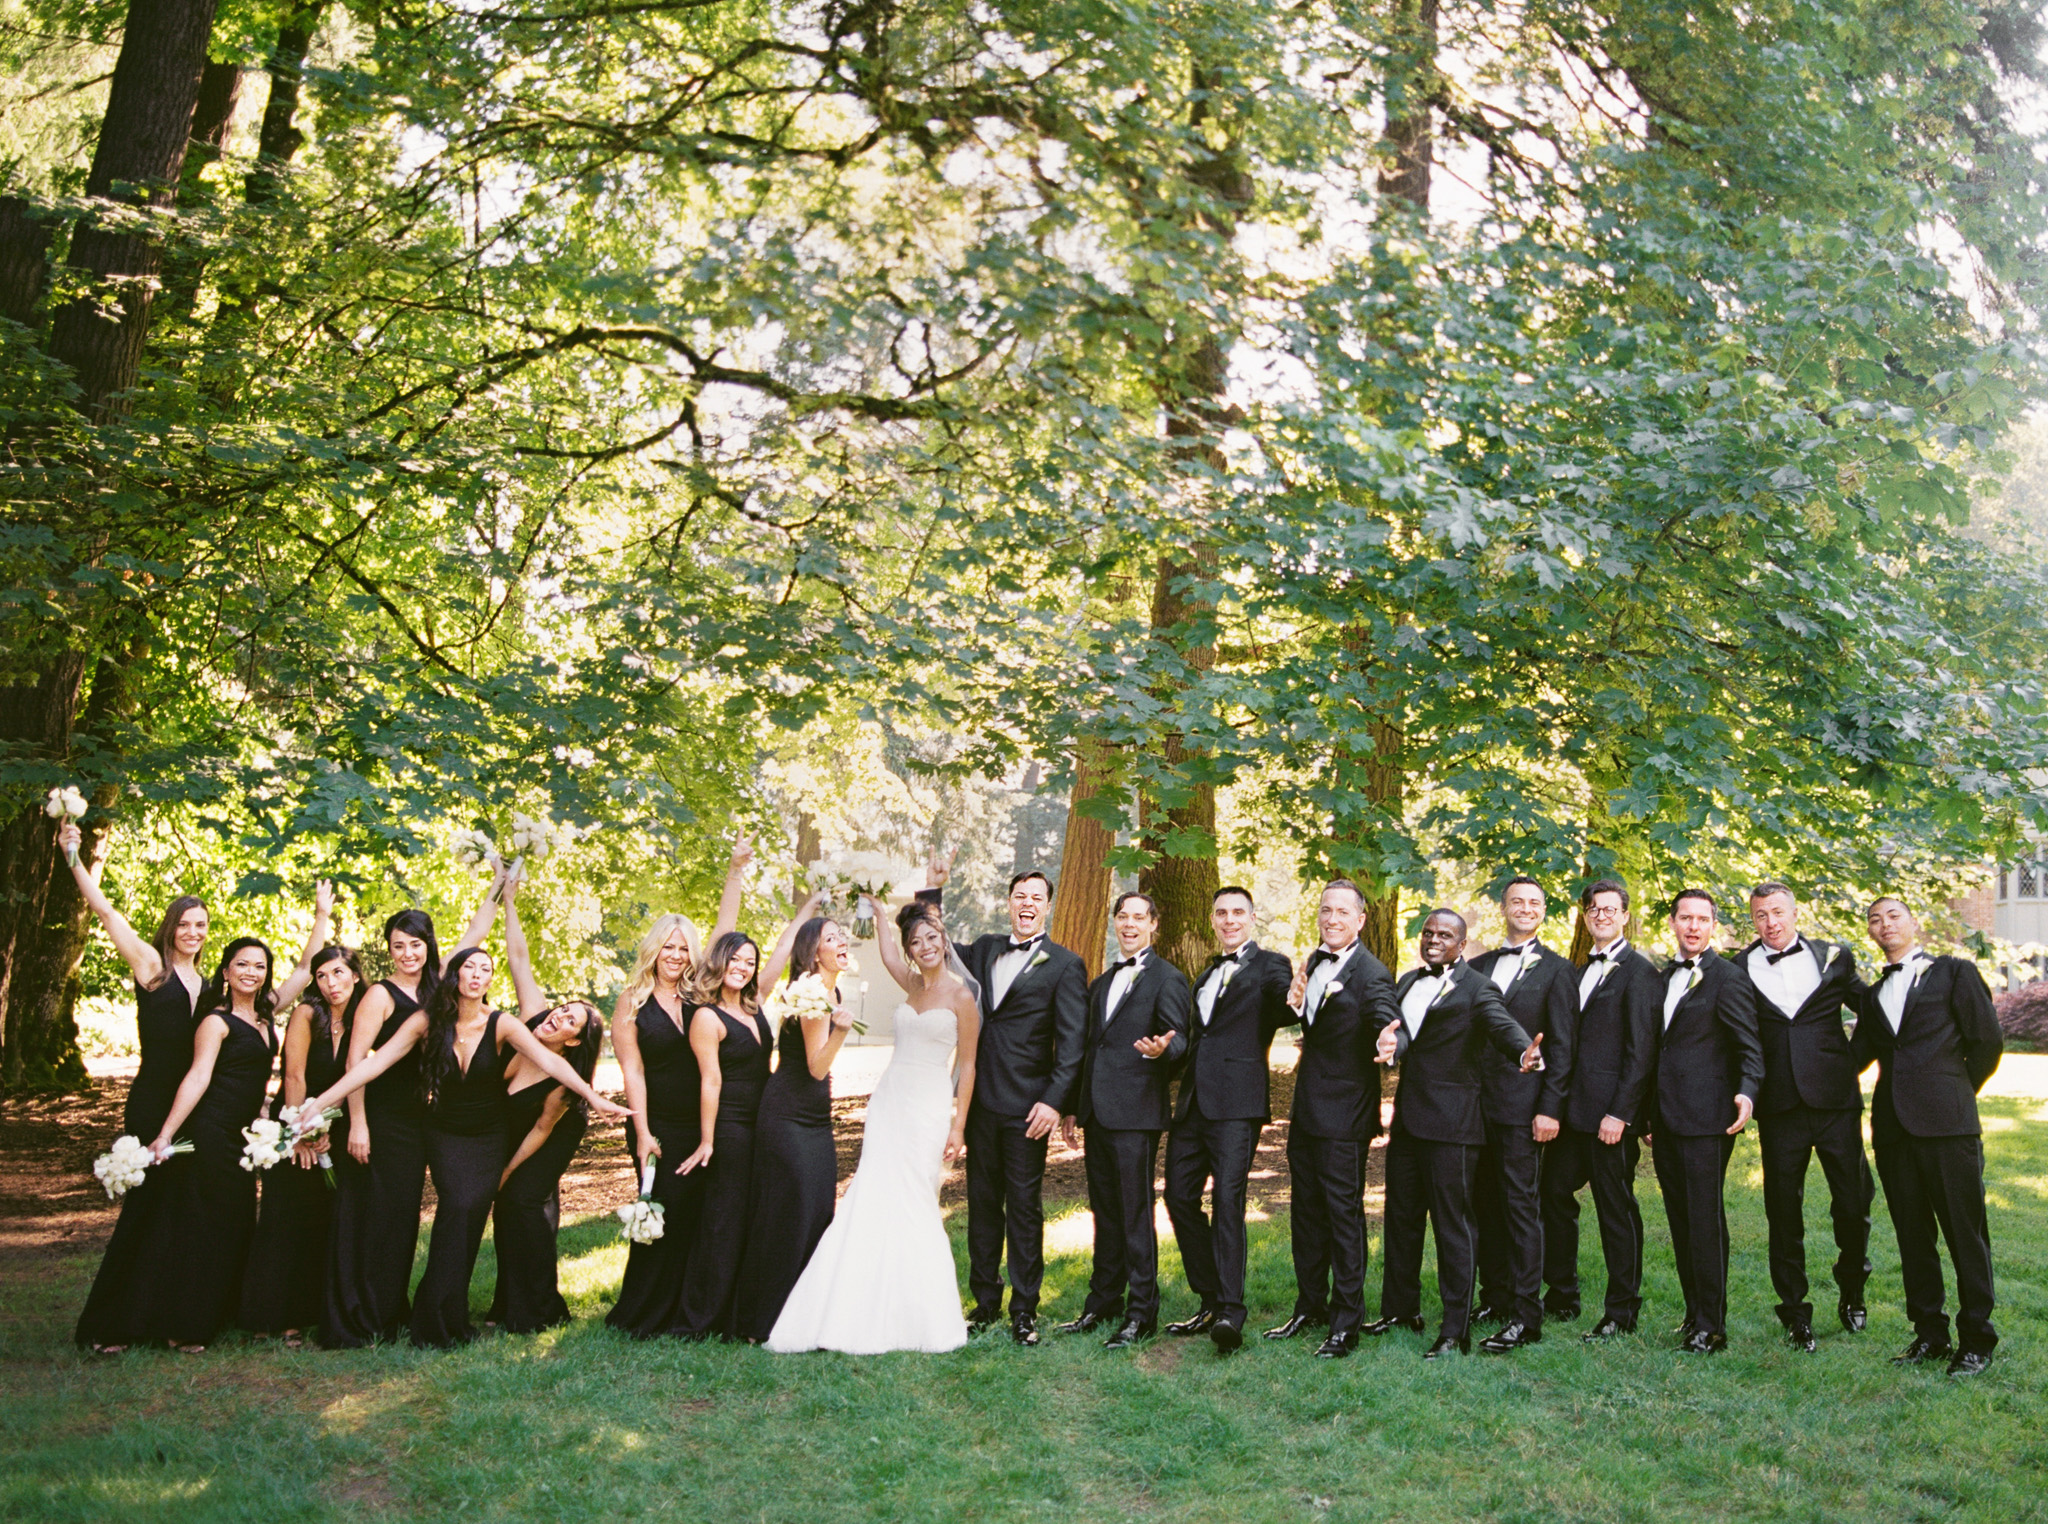 078OutliveCreative_Travel_Photographer_Videographer_Lewis&Clark_Oregon_Elegant_BlackTie_Destination_Wedding.jpg